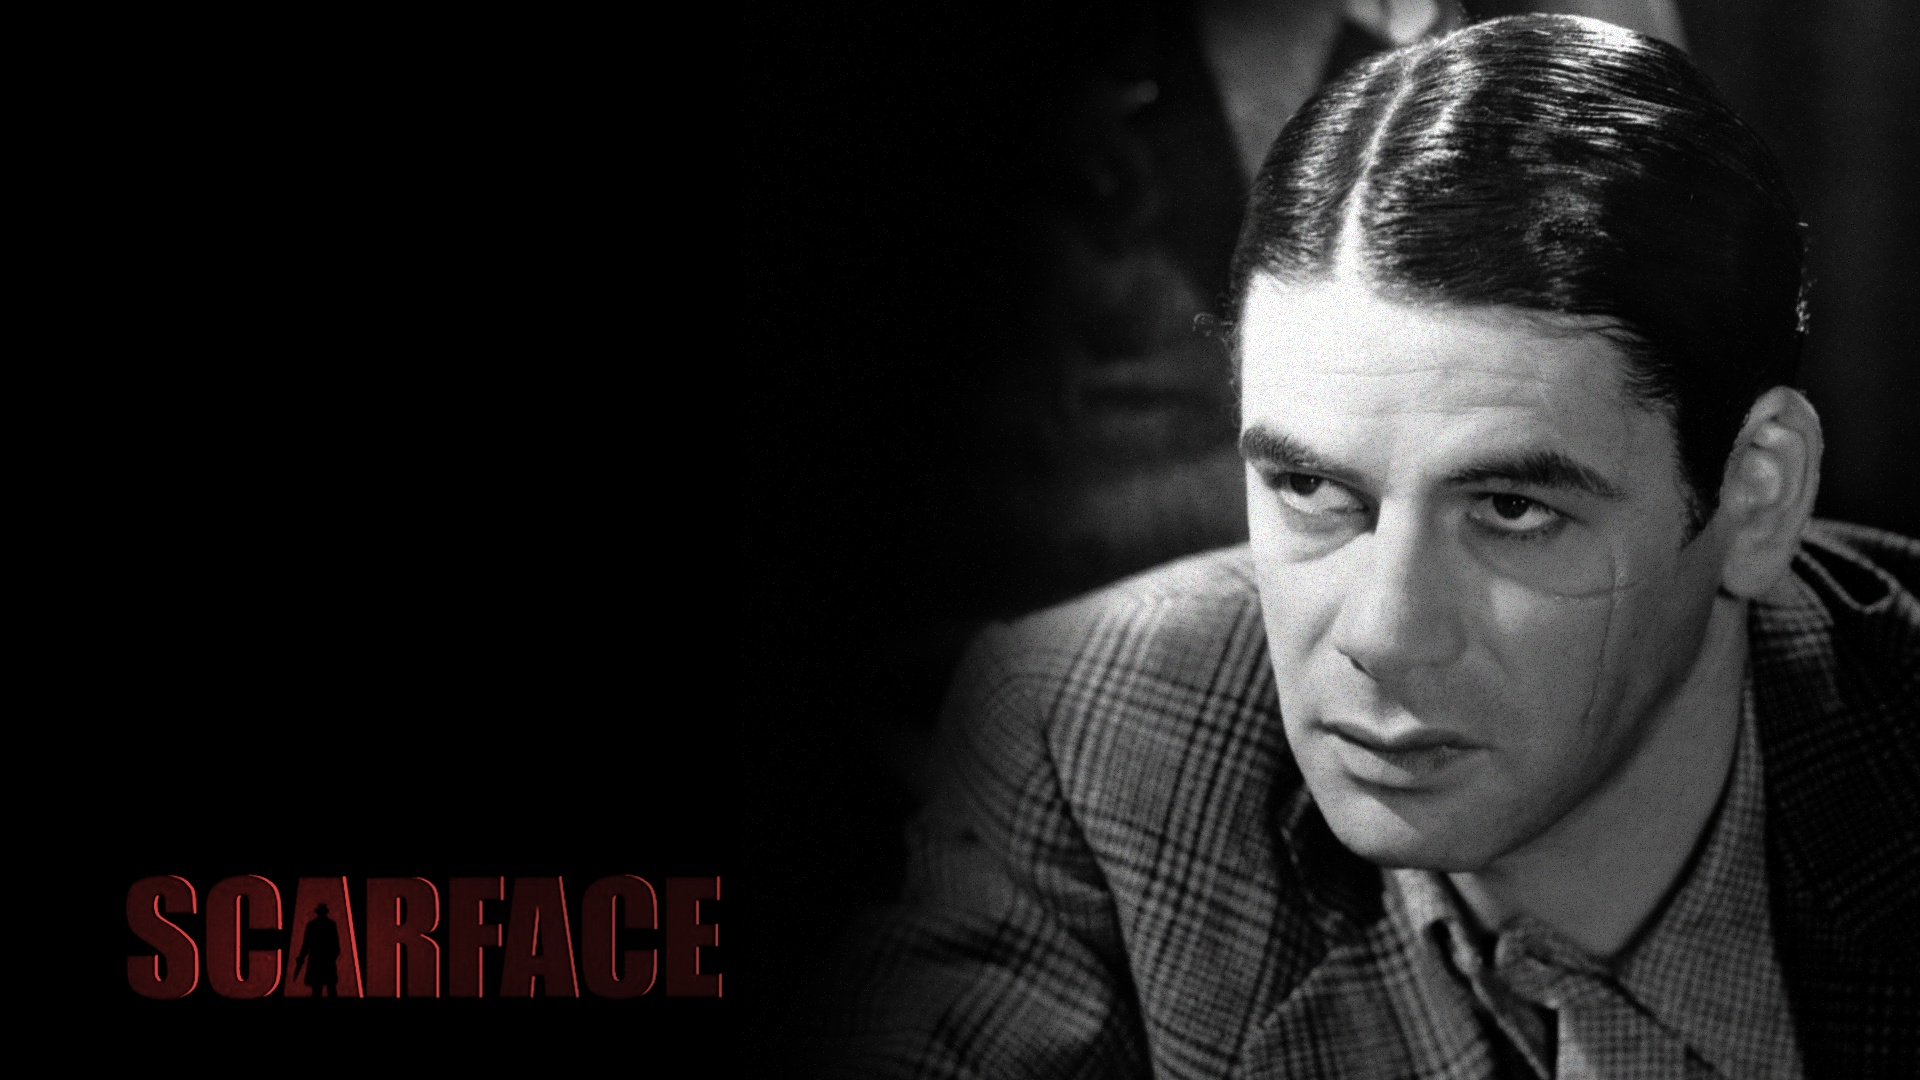 scarface wallpaper,forehead,chin,movie,black and white,photography